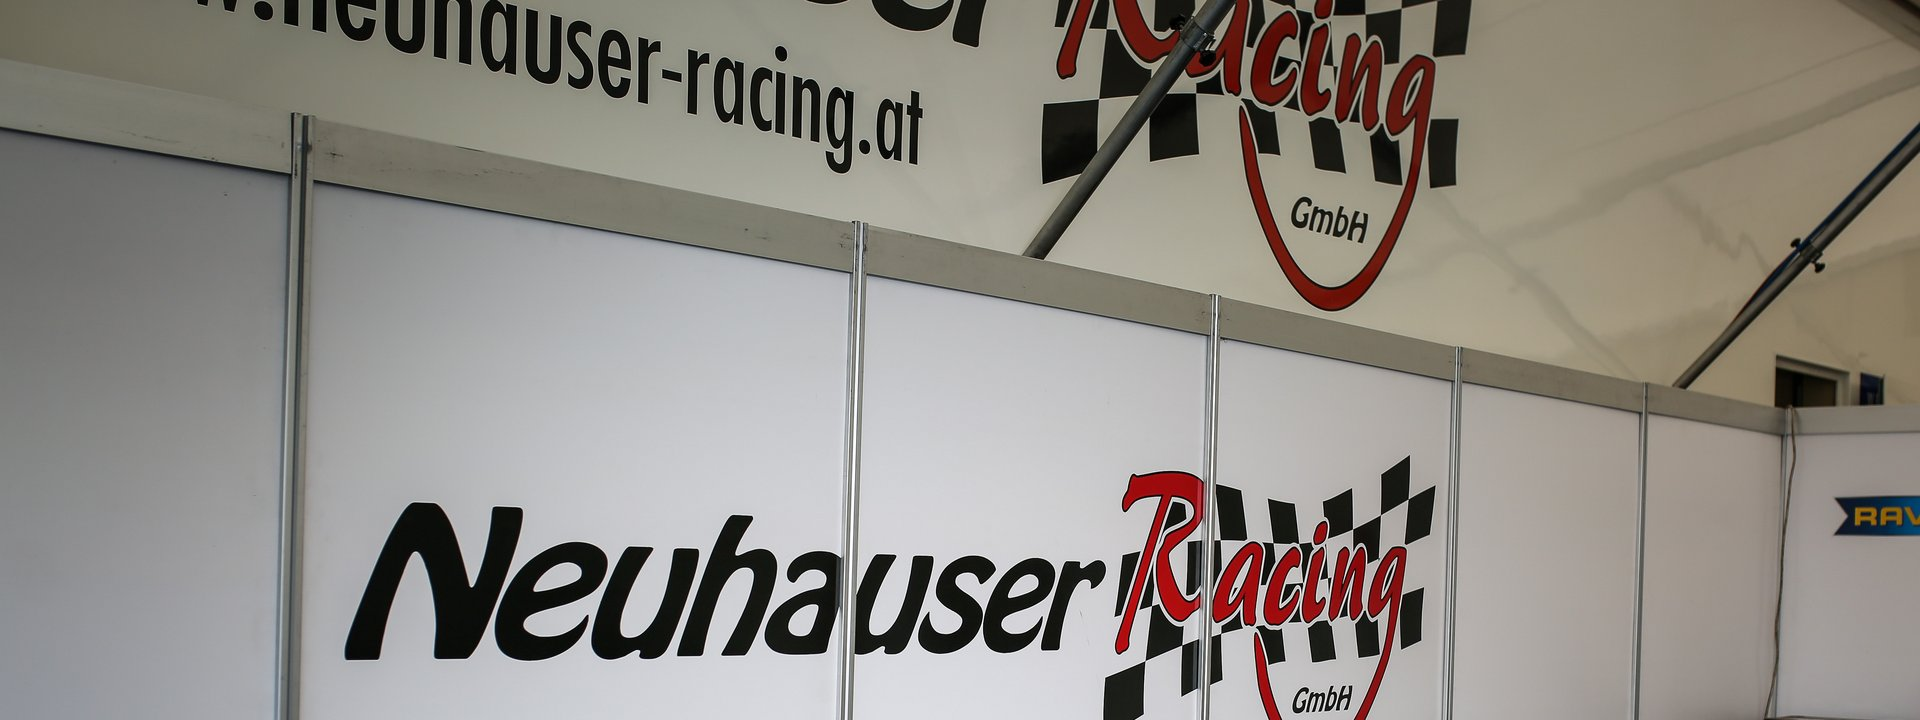 Neuhauser Racing